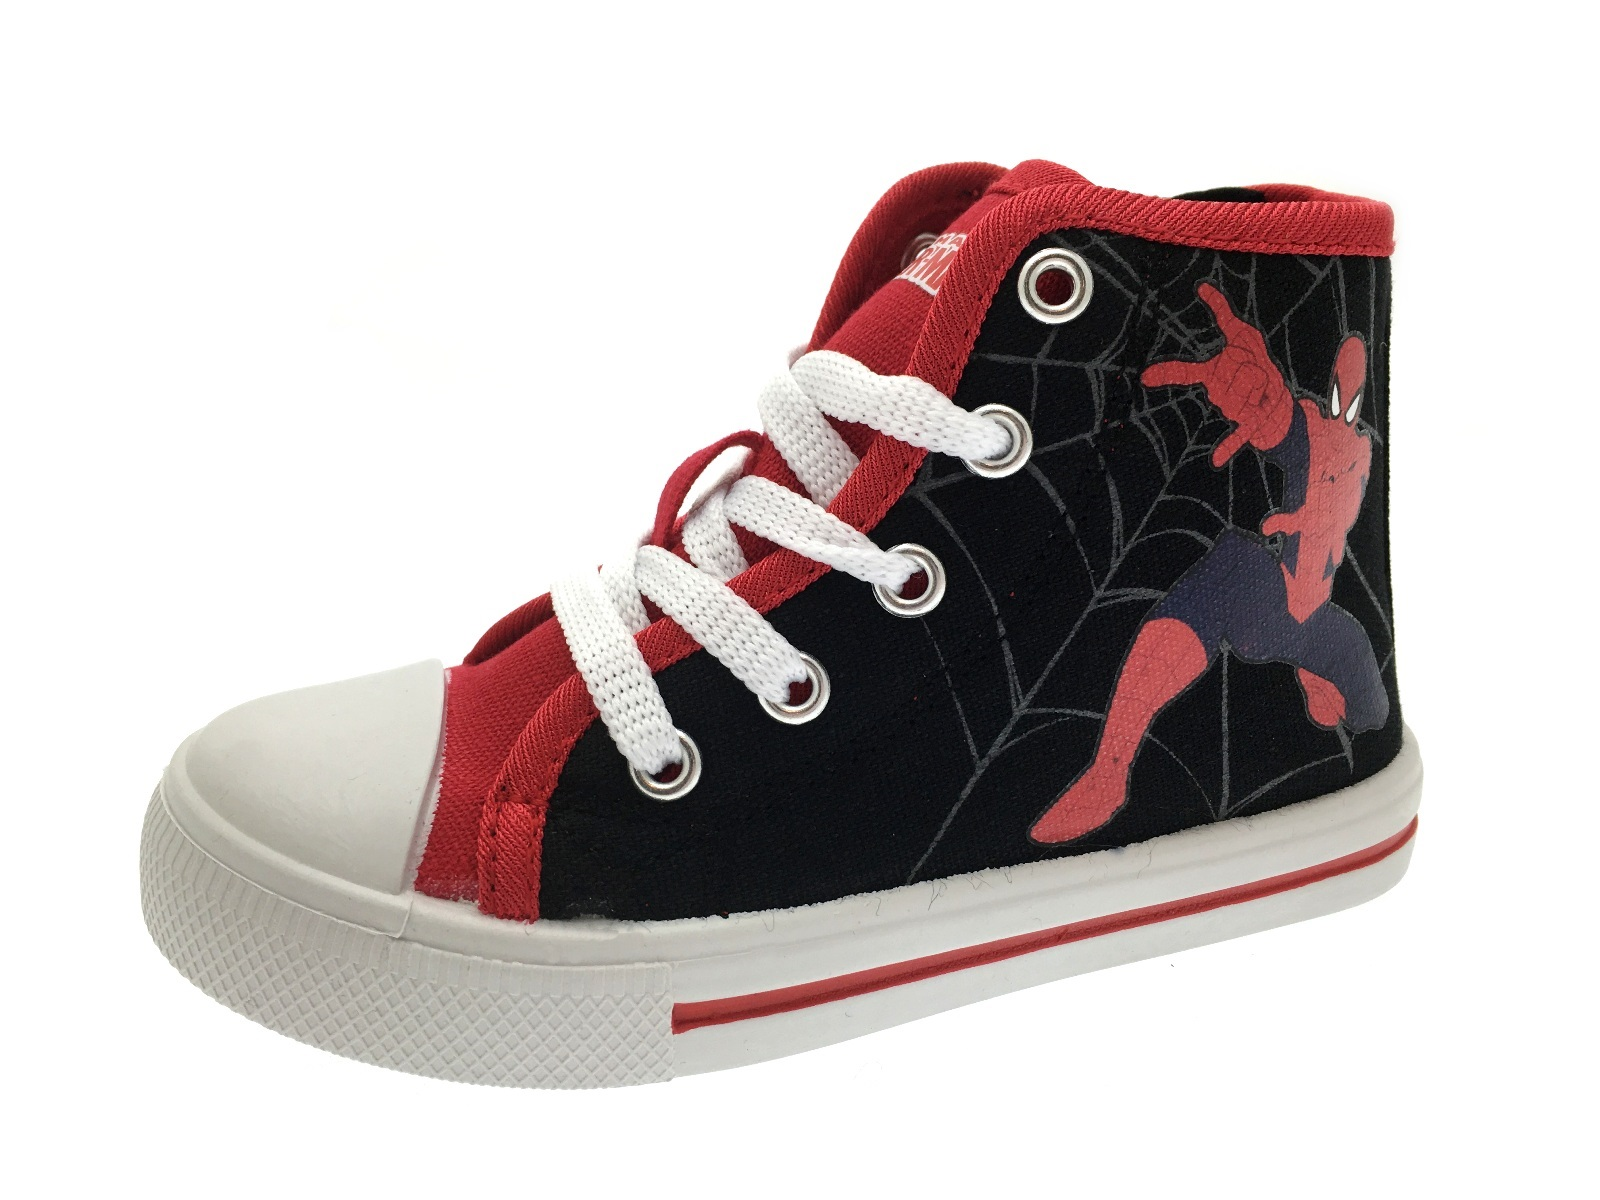 73c76daacf Details about Marvel Spiderman Hi Tops Canvas Pumps Trainers Ankle Boots  Boys Shoes Kids Size